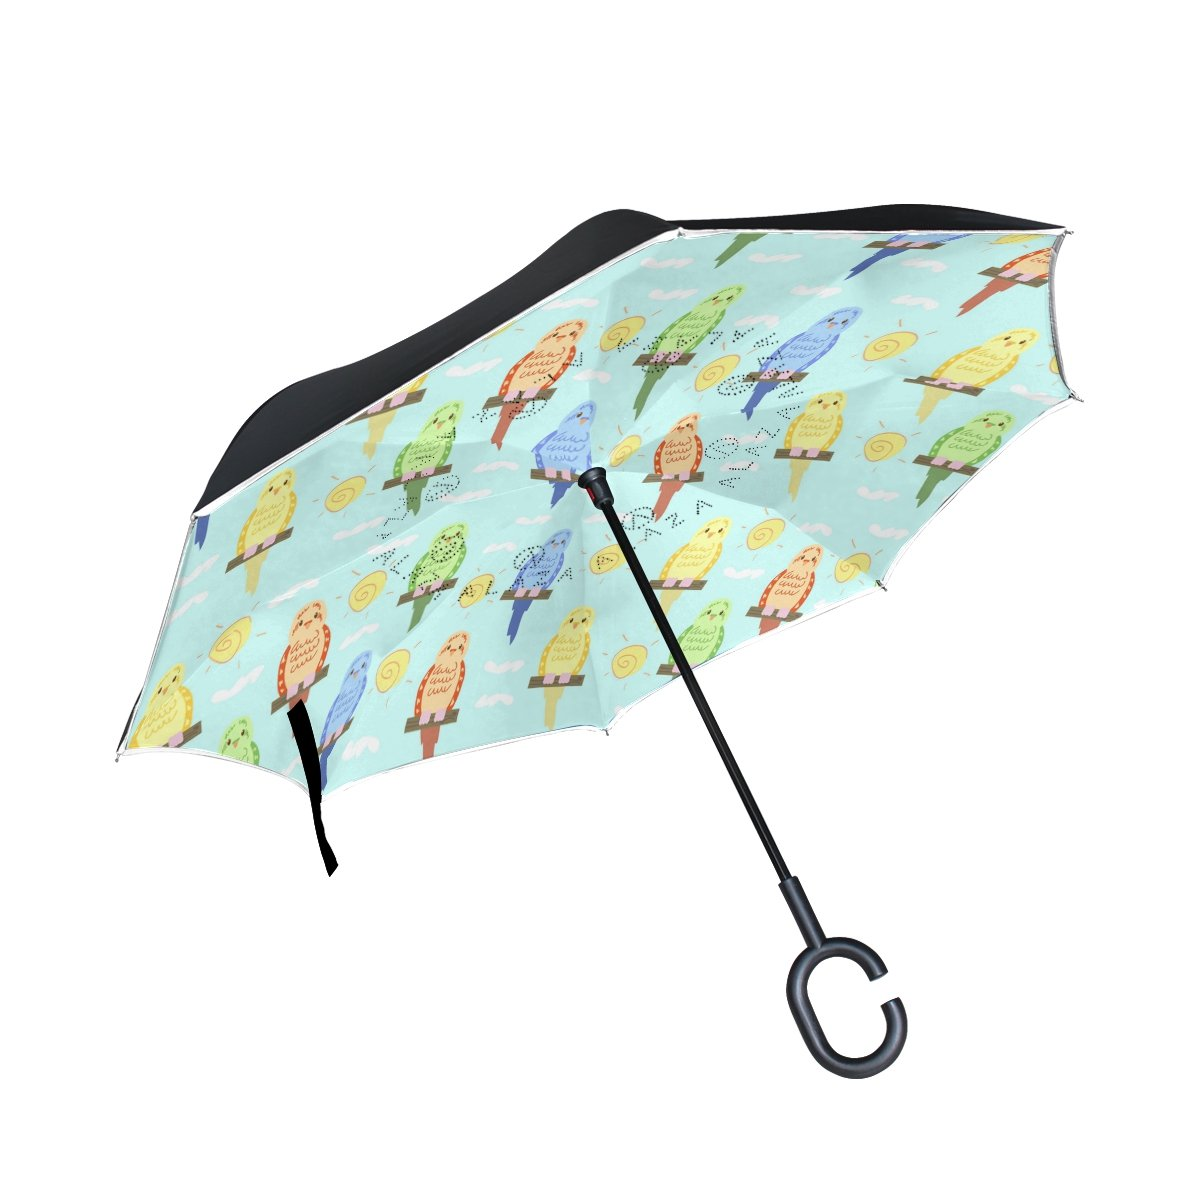 MUMIMI Cartoon Budgie Reverse Umbrella Inverted Double Layer Windproof UV Protection Reverse Folding Umbrellas Inverted Umbrella Travel Umbrella with C Shaped Handle